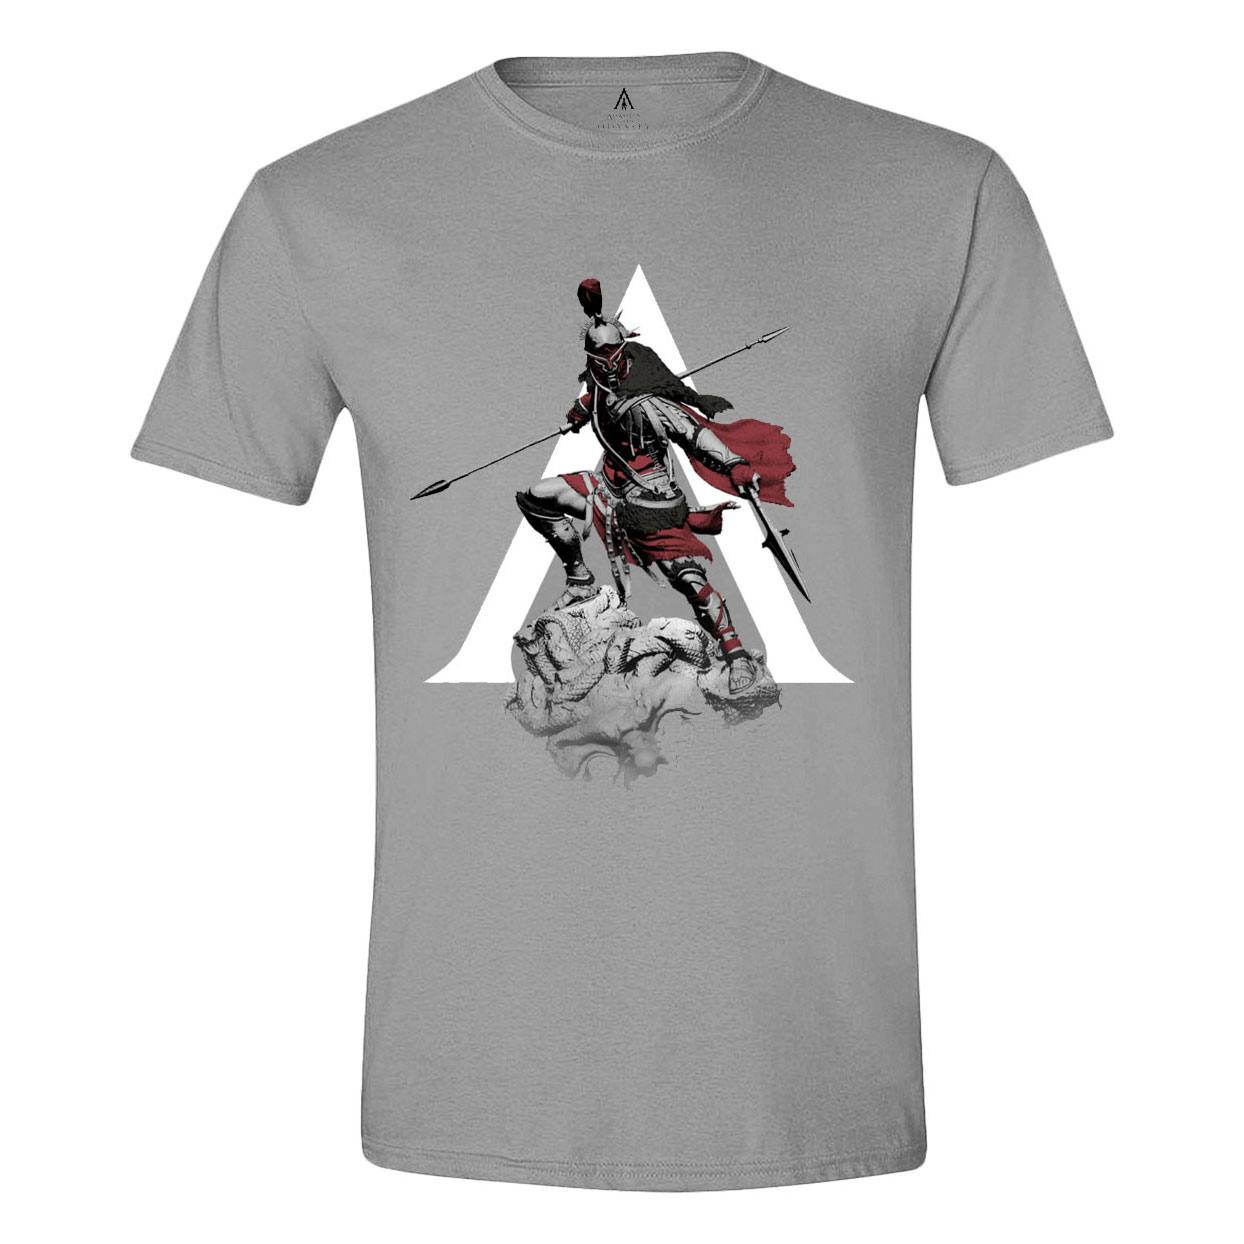 Assassin's Creed Odyssey T-Shirt Character Charge Grey Size M